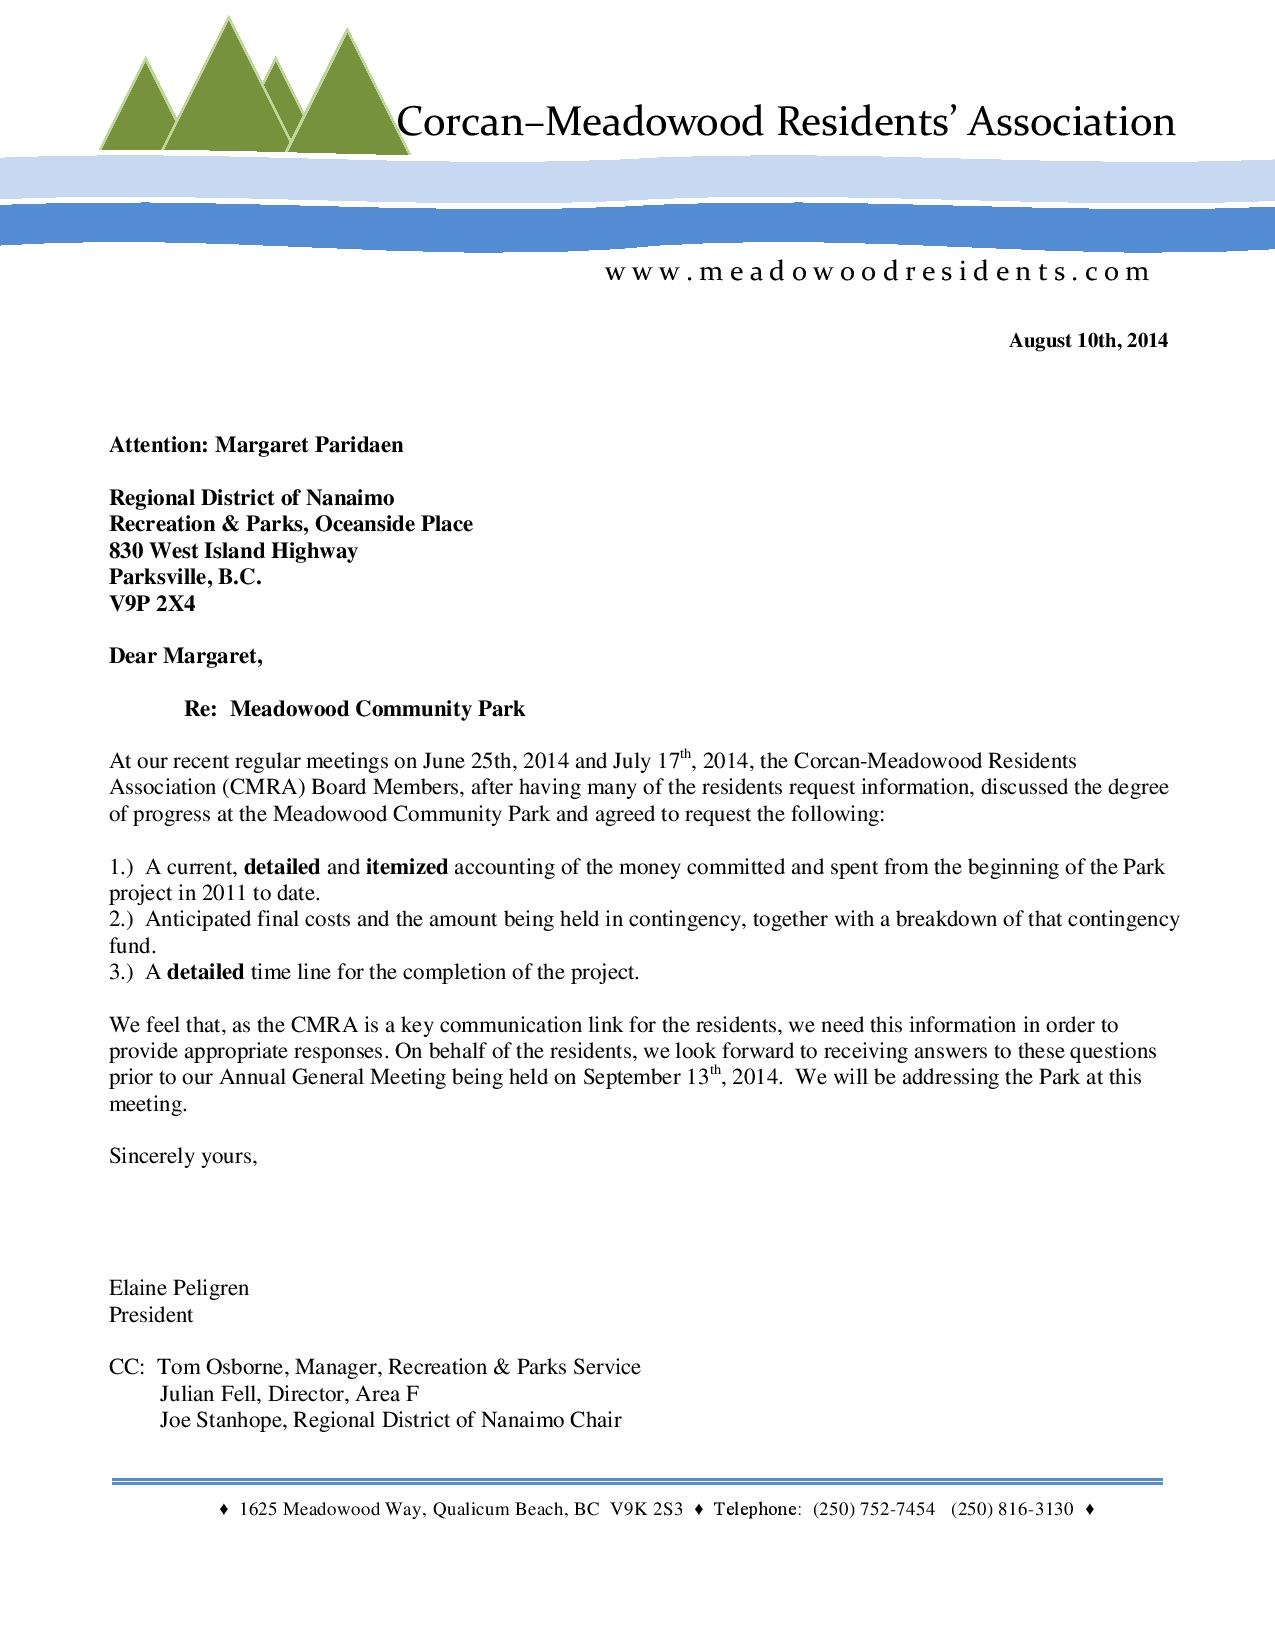 August 2014 corcan meadowood residents association cmra letter to rdn regarding meadowood community park amended aug 10th 2014 yelopaper Choice Image